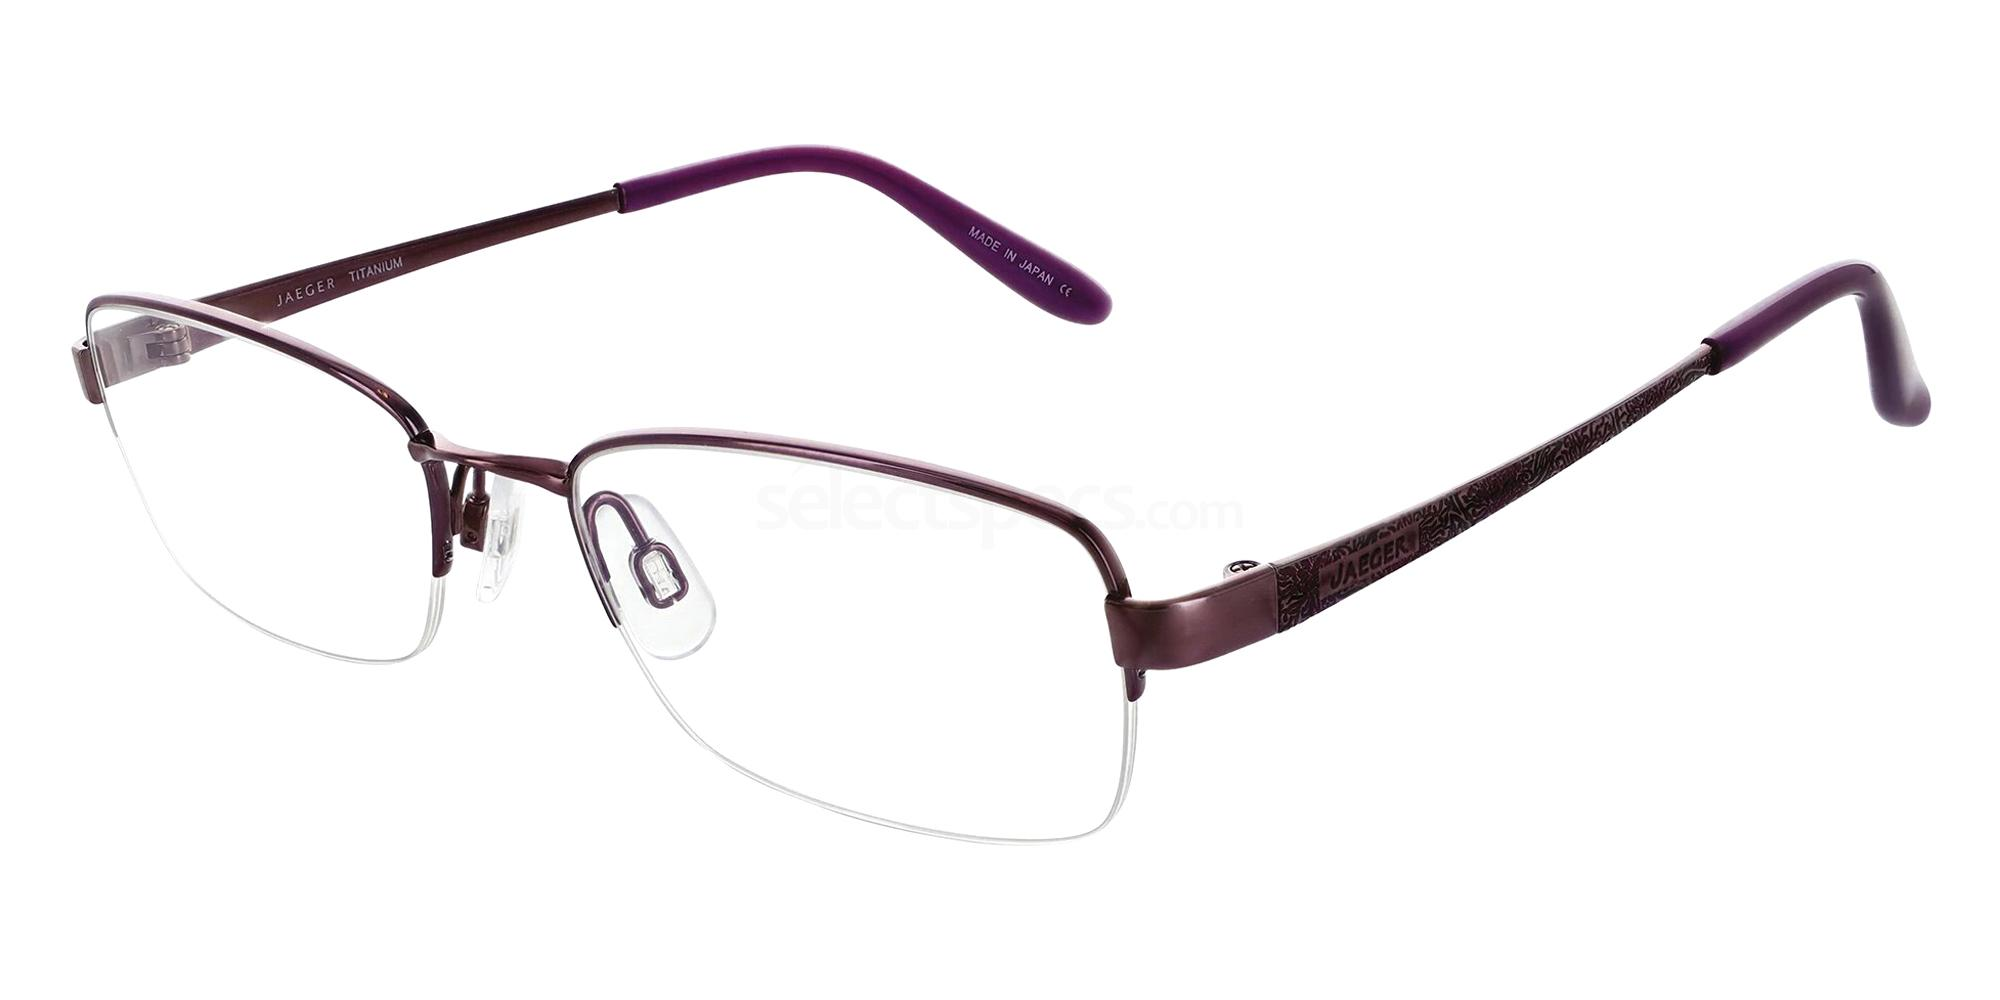 Grape 310 Glasses, Jaeger Pure Titanium